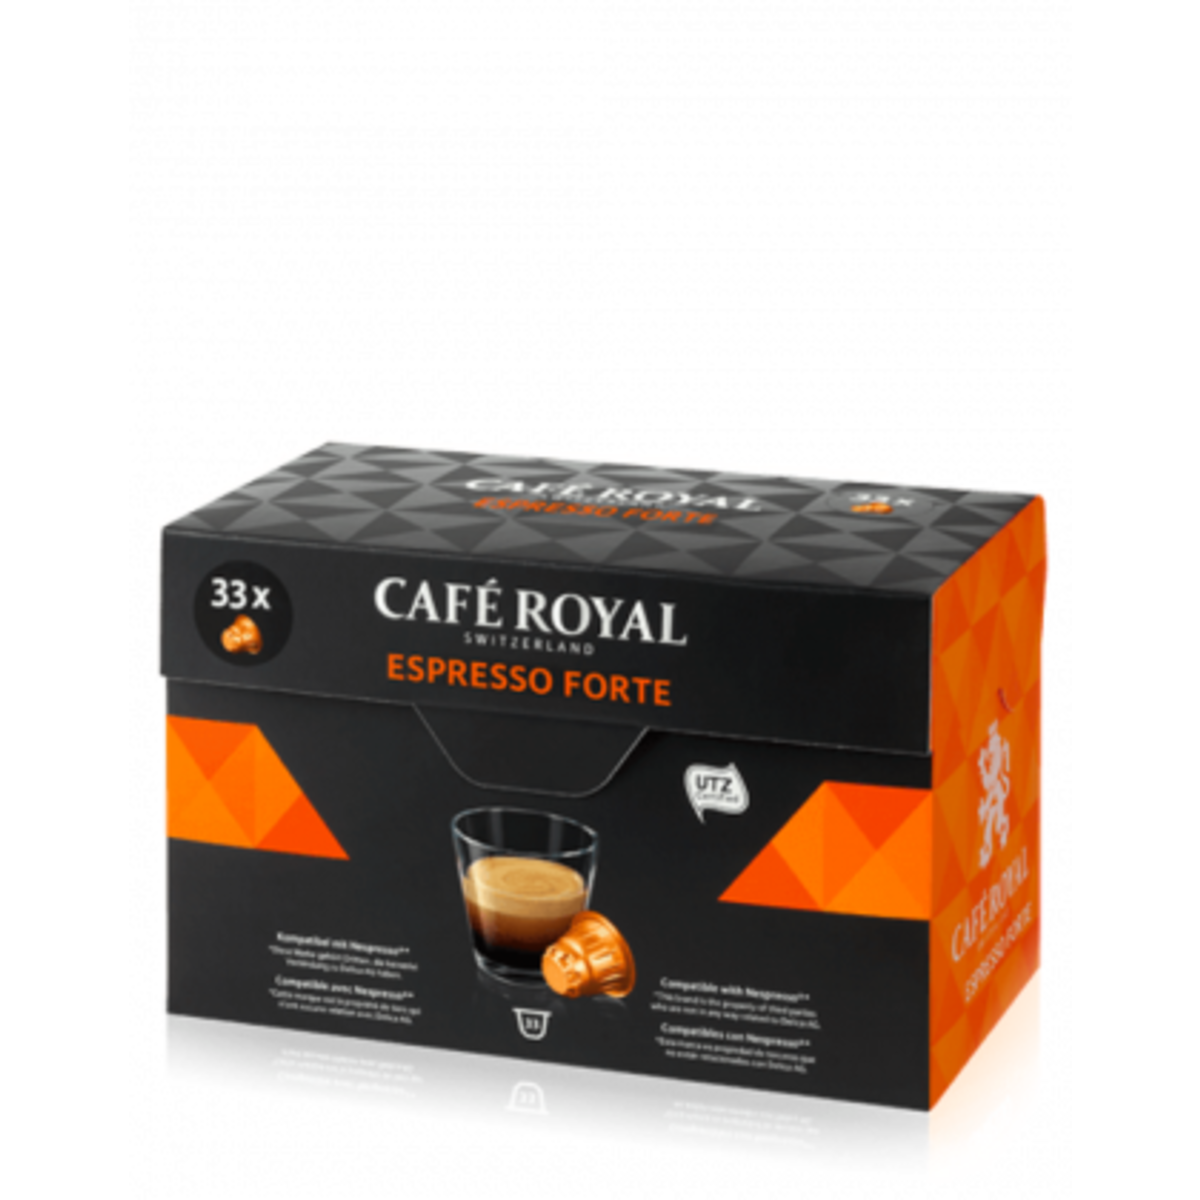 Cafe Royal Espresso Forte 33бр капсули за Nespresso кафемашина